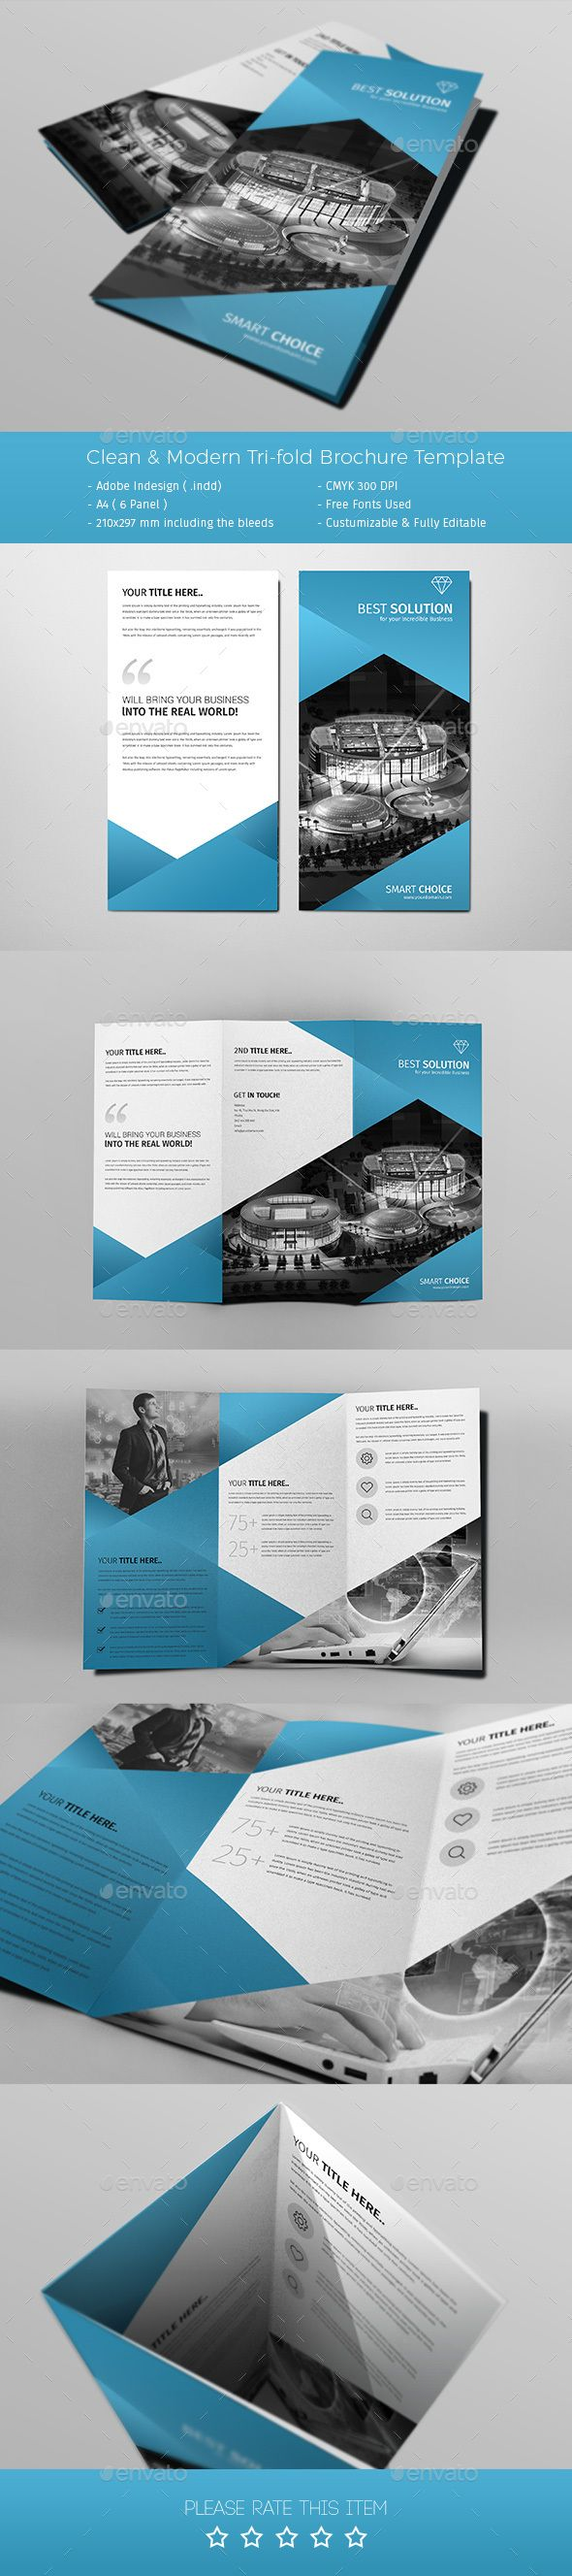 A4 Corporate Business Brochure Template PSD. Download here: https://graphicriver.net/item/a4-corporate-business-template-vol-06/17391911?ref=ksioks